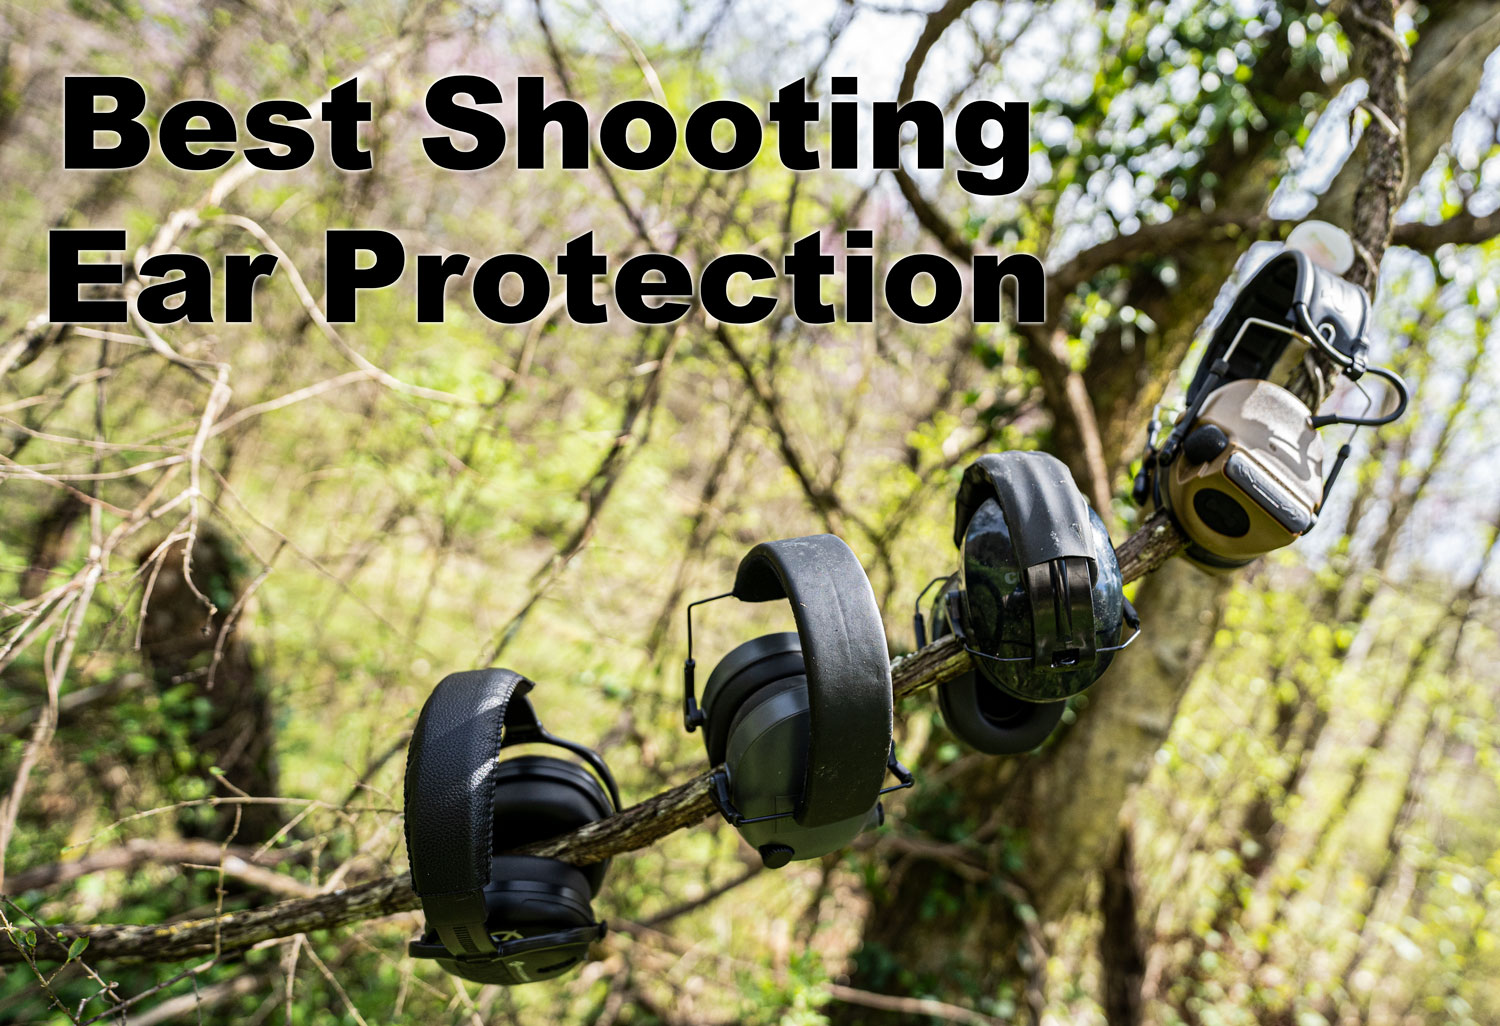 what is the best shooting ear protection?